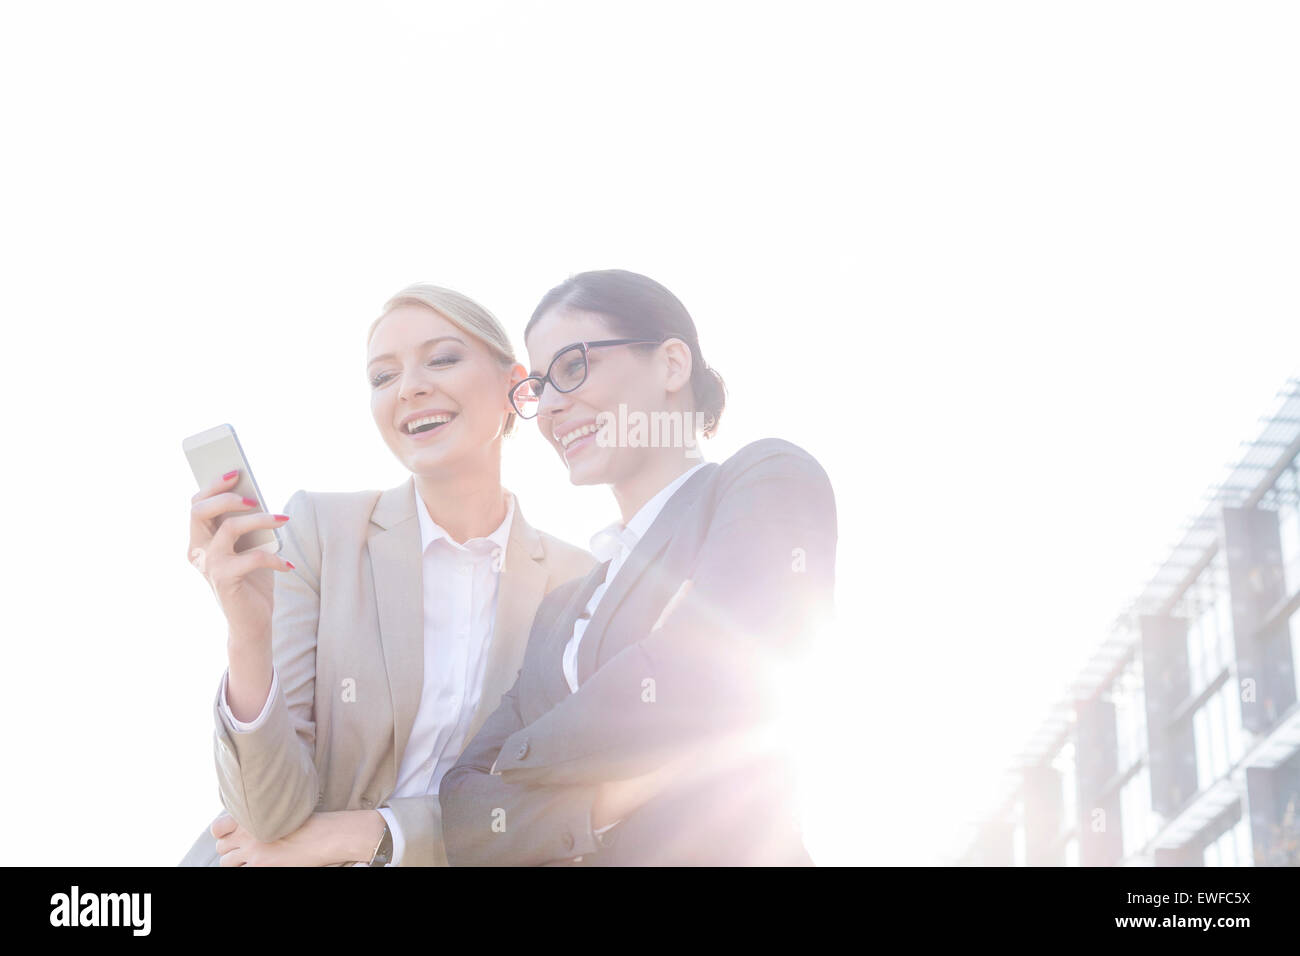 Low angle view of happy businesswomen using smart phone against clear sky on sunny day - Stock Image